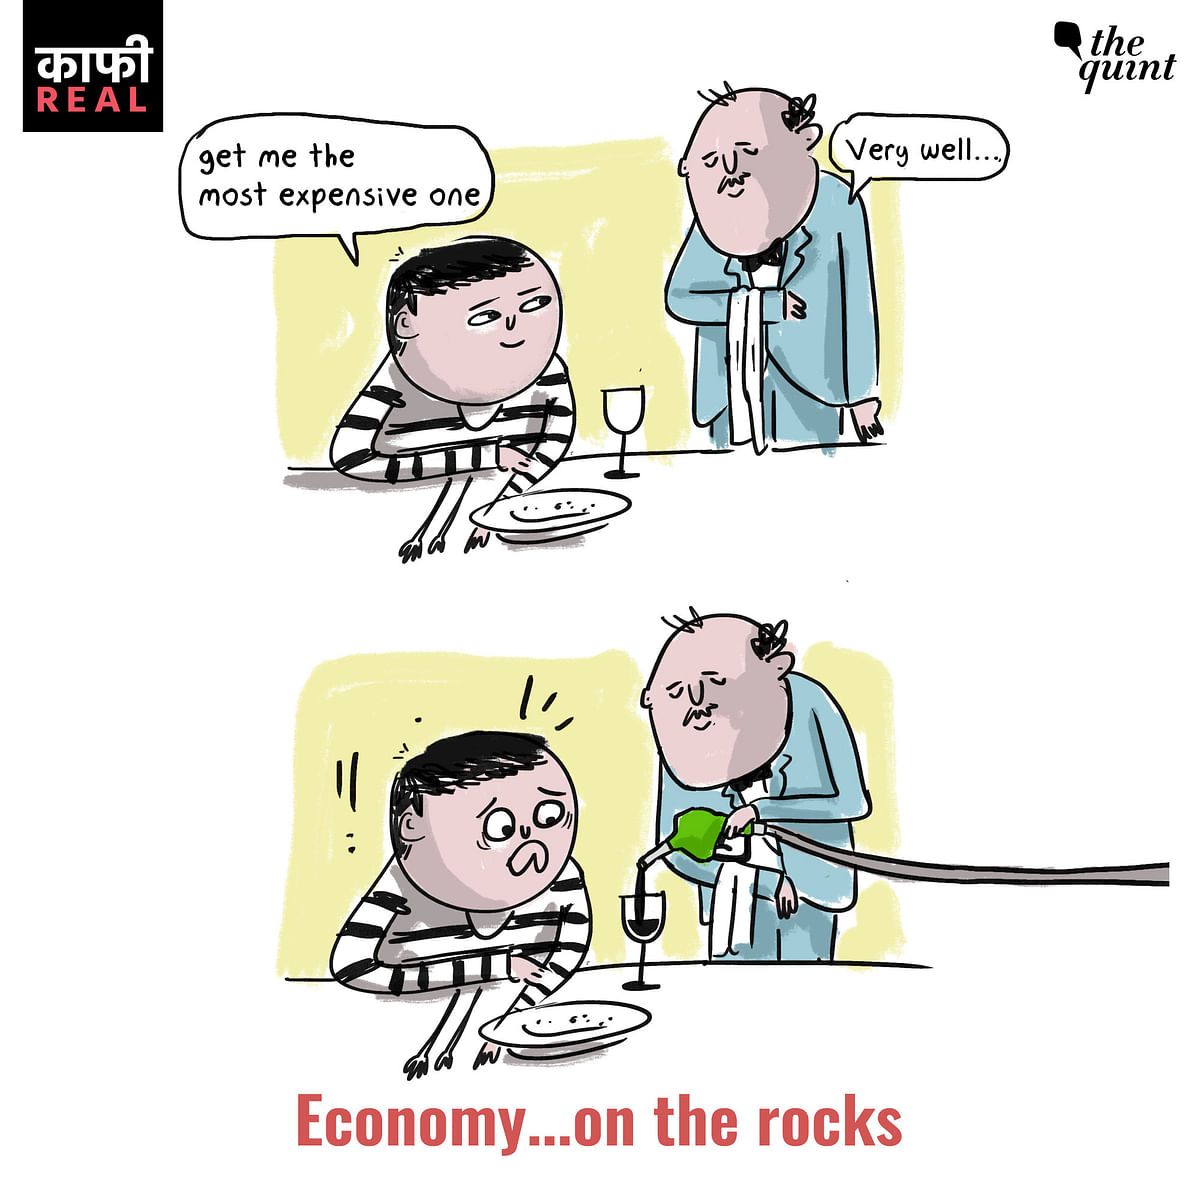 This Cartoon on the Fuel Price Hikes Will Make You Laugh, in Pain